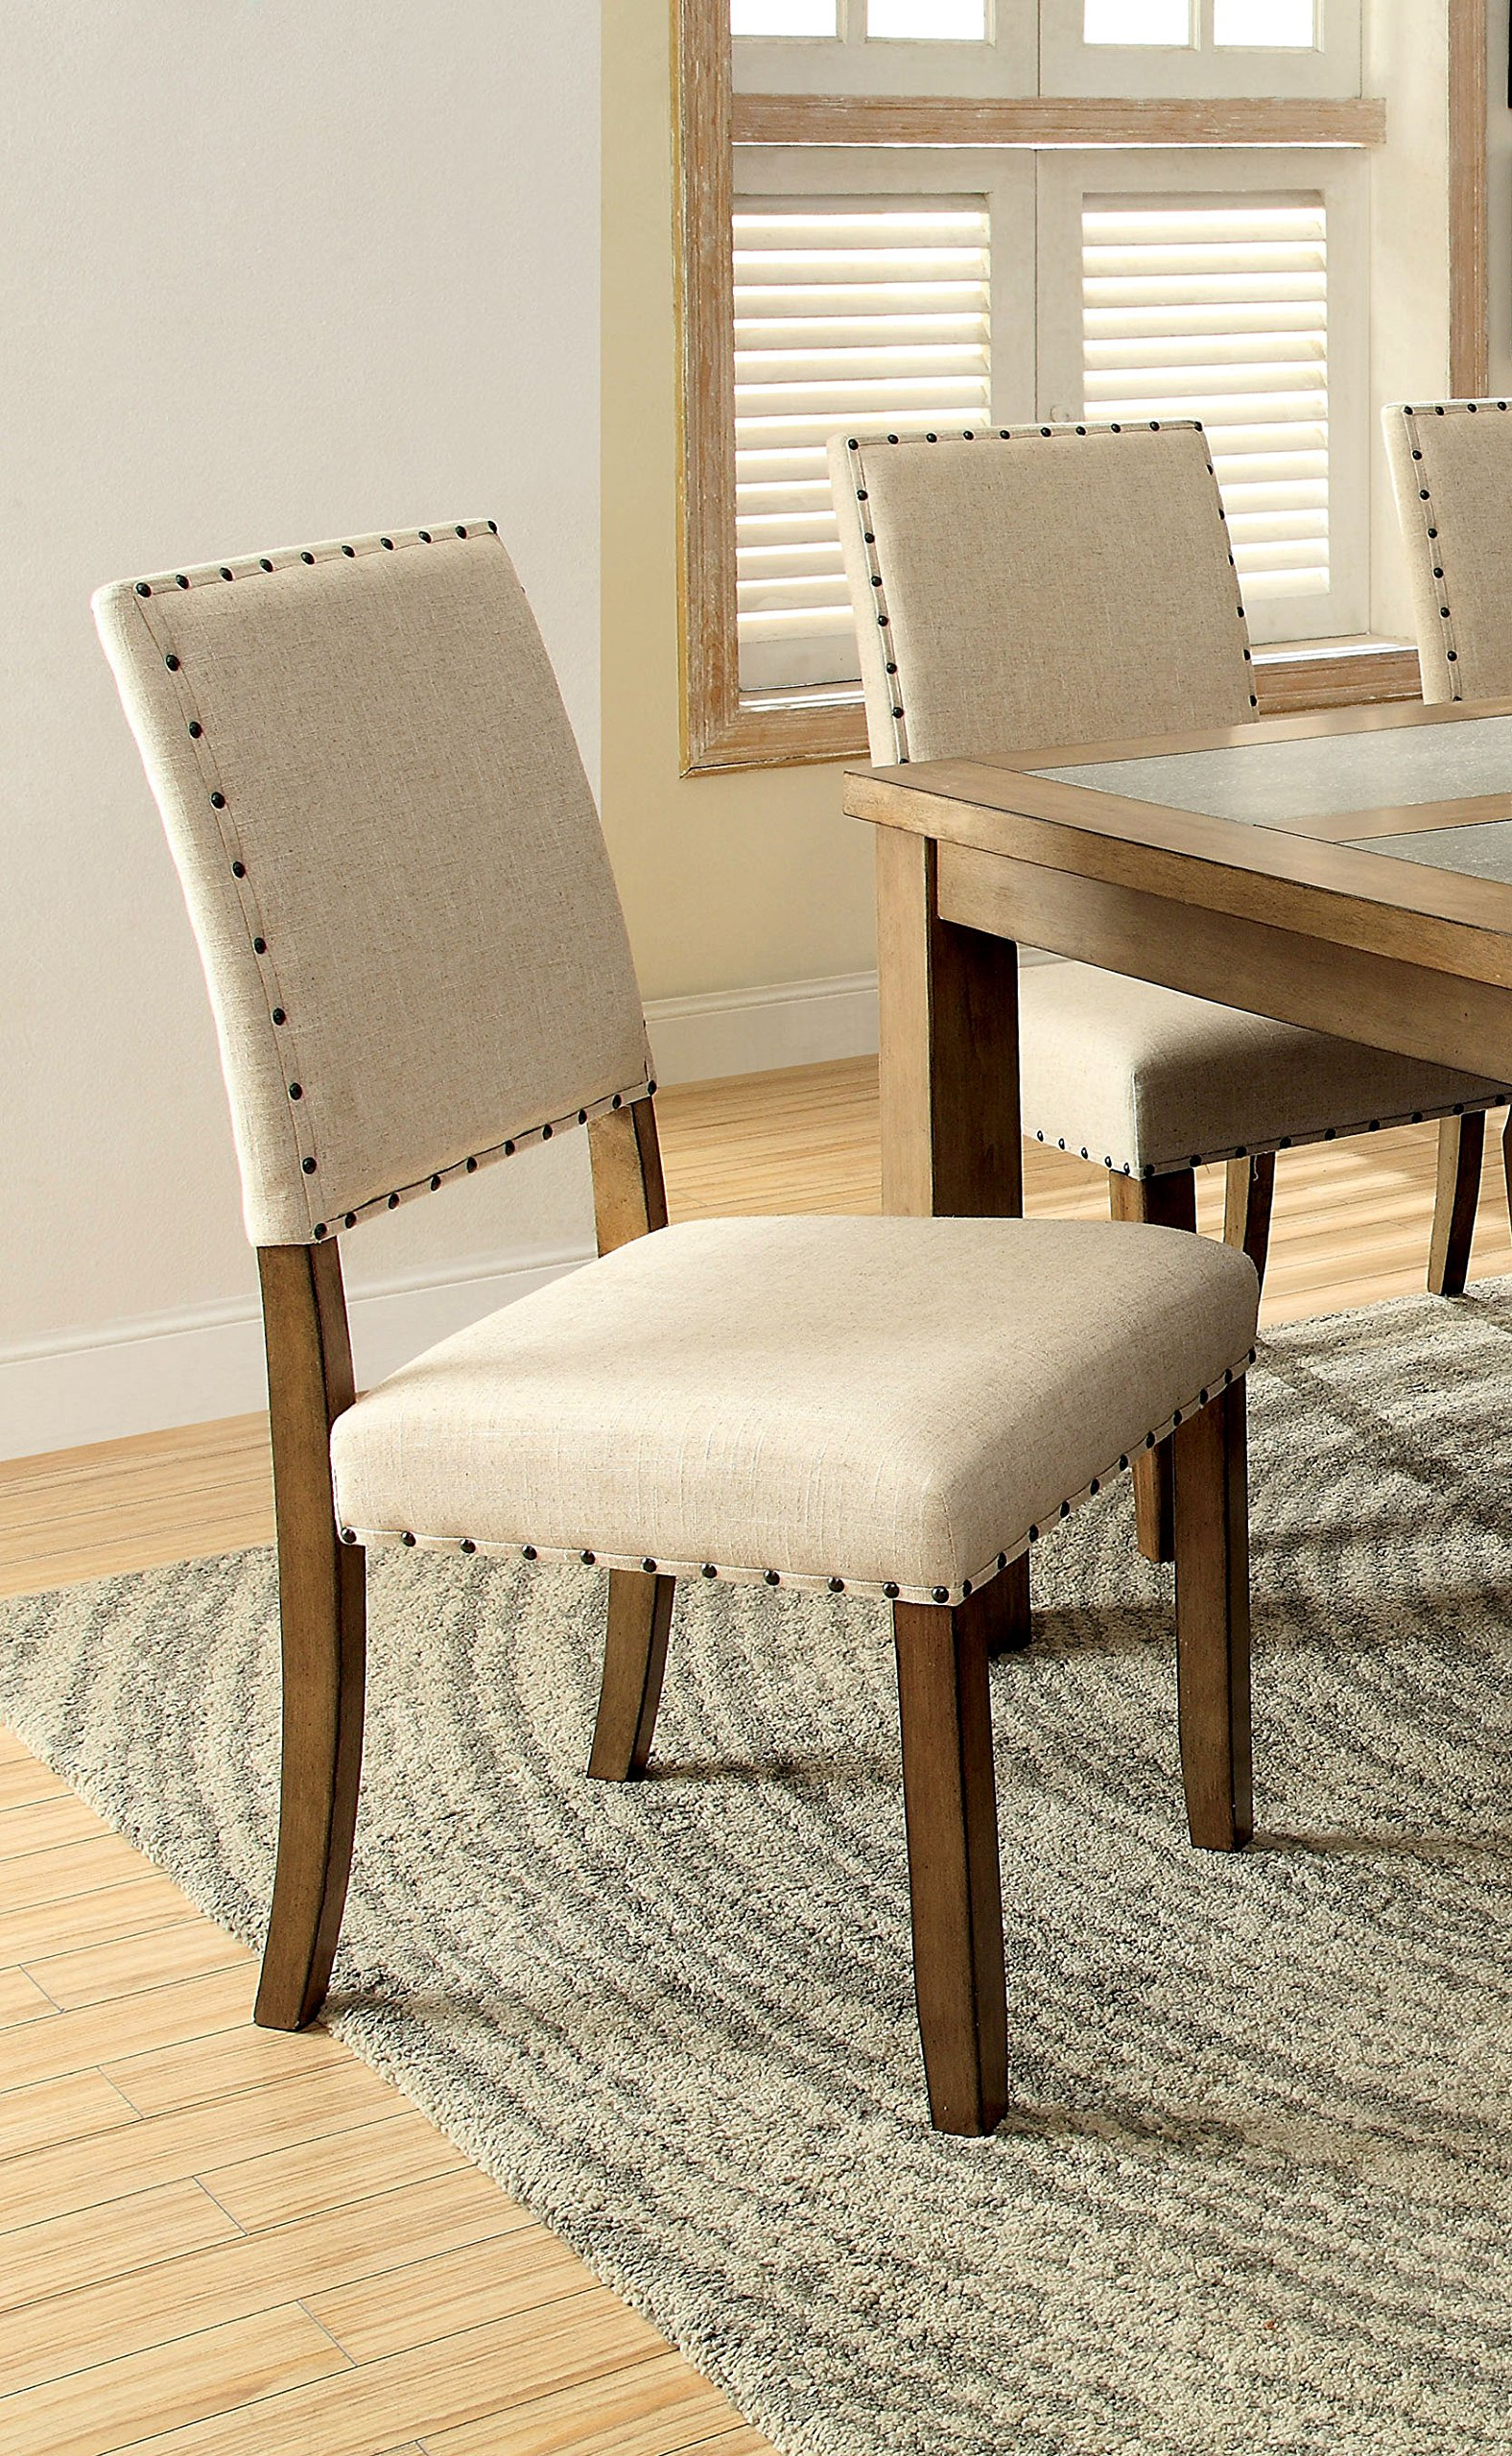 Furniture of America Lucena Transitional Dining Chair, Set of 2